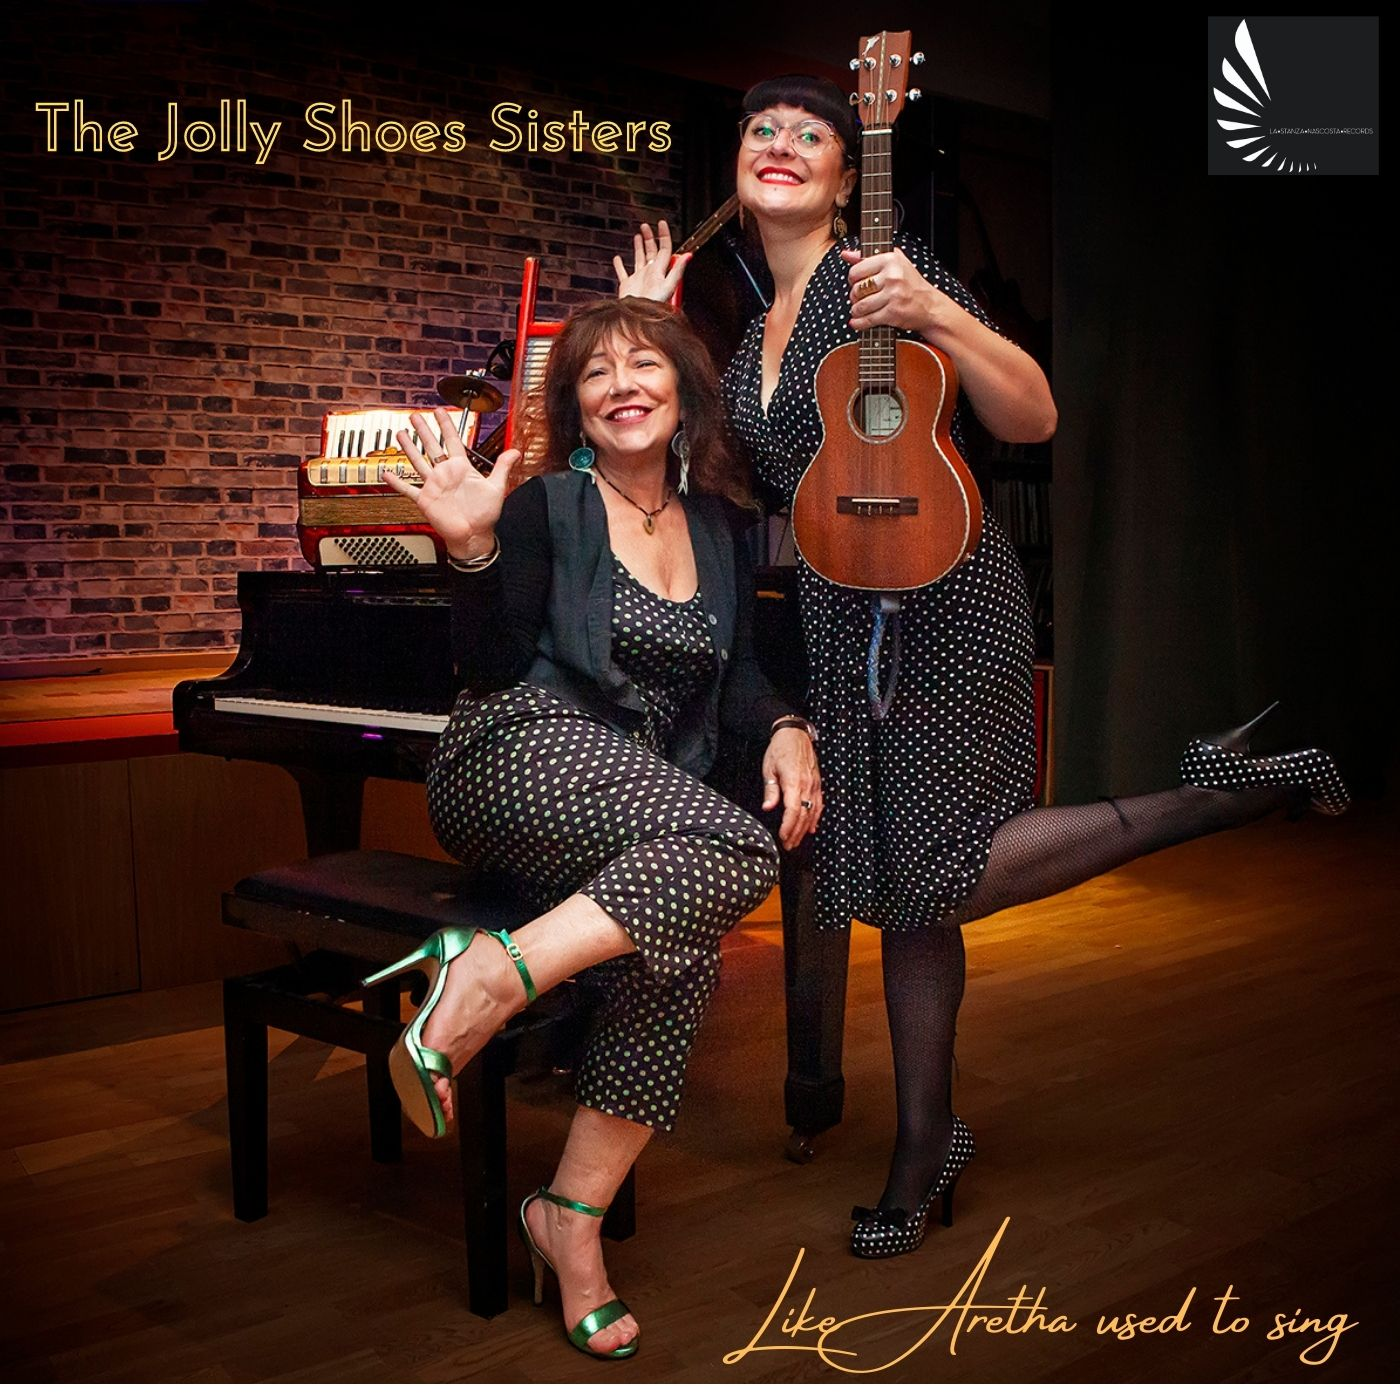 The Jolly Shoes Sisters presentano Like Aretha used to sing